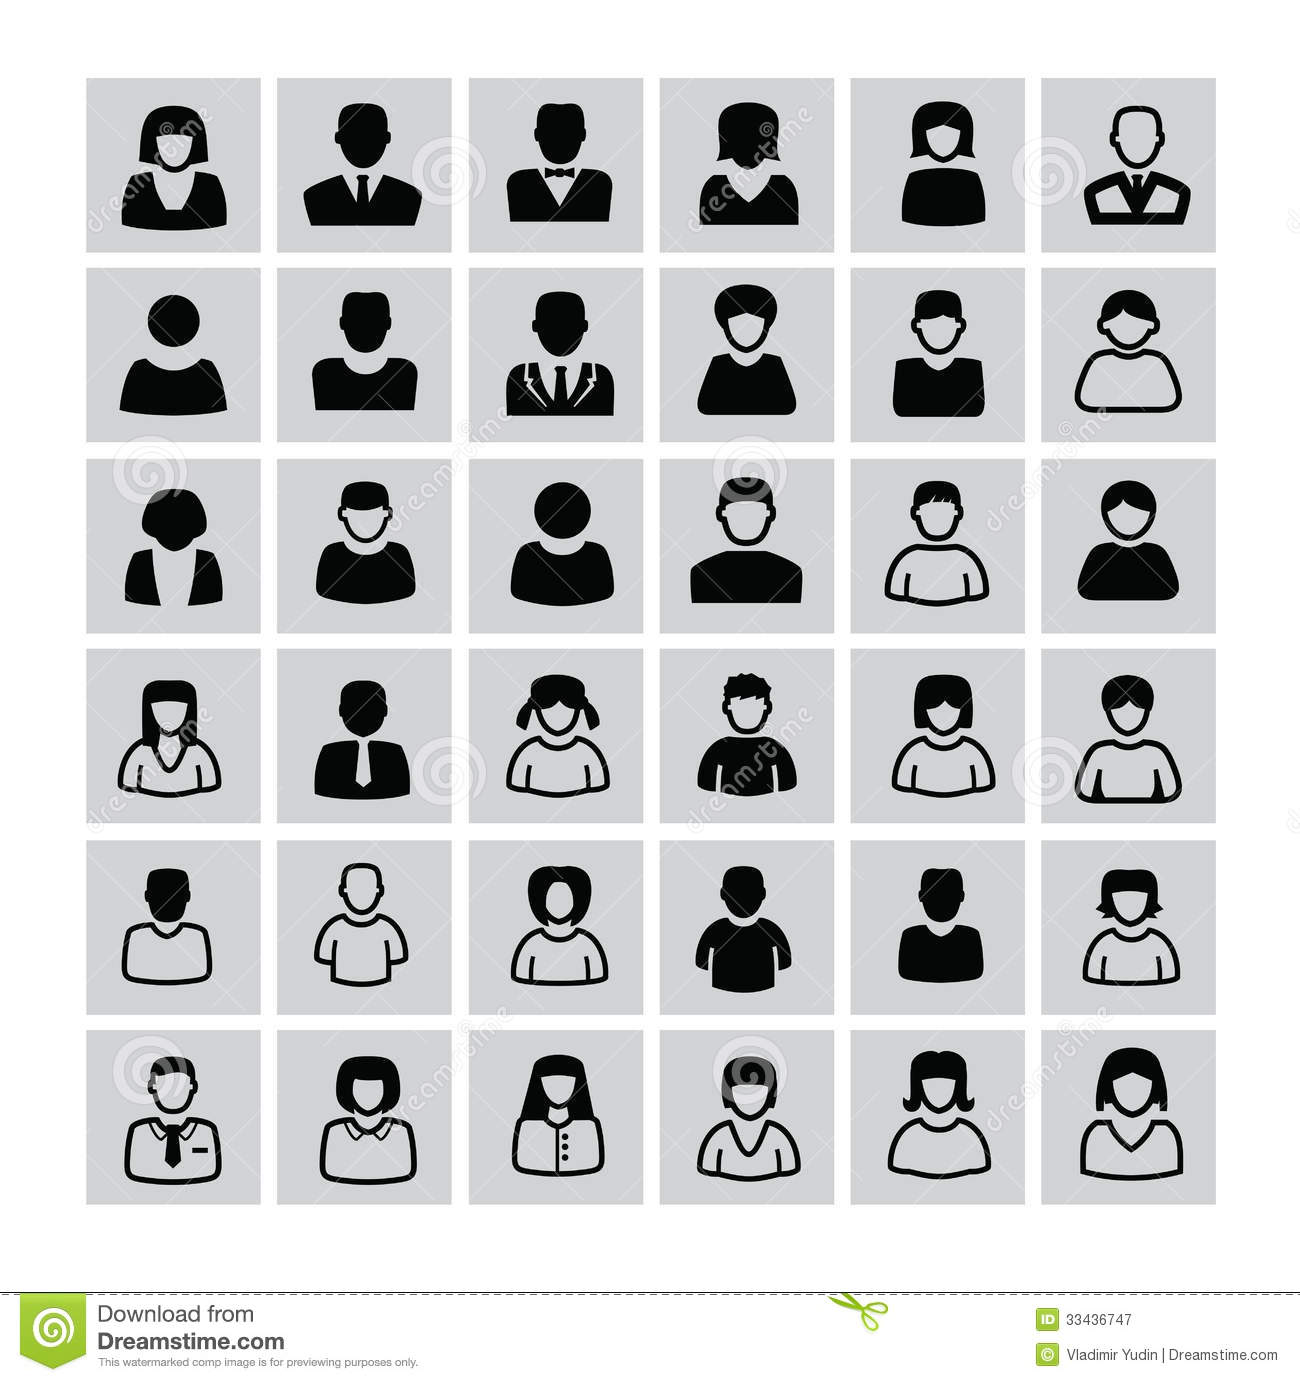 Black and White Vector People Icons